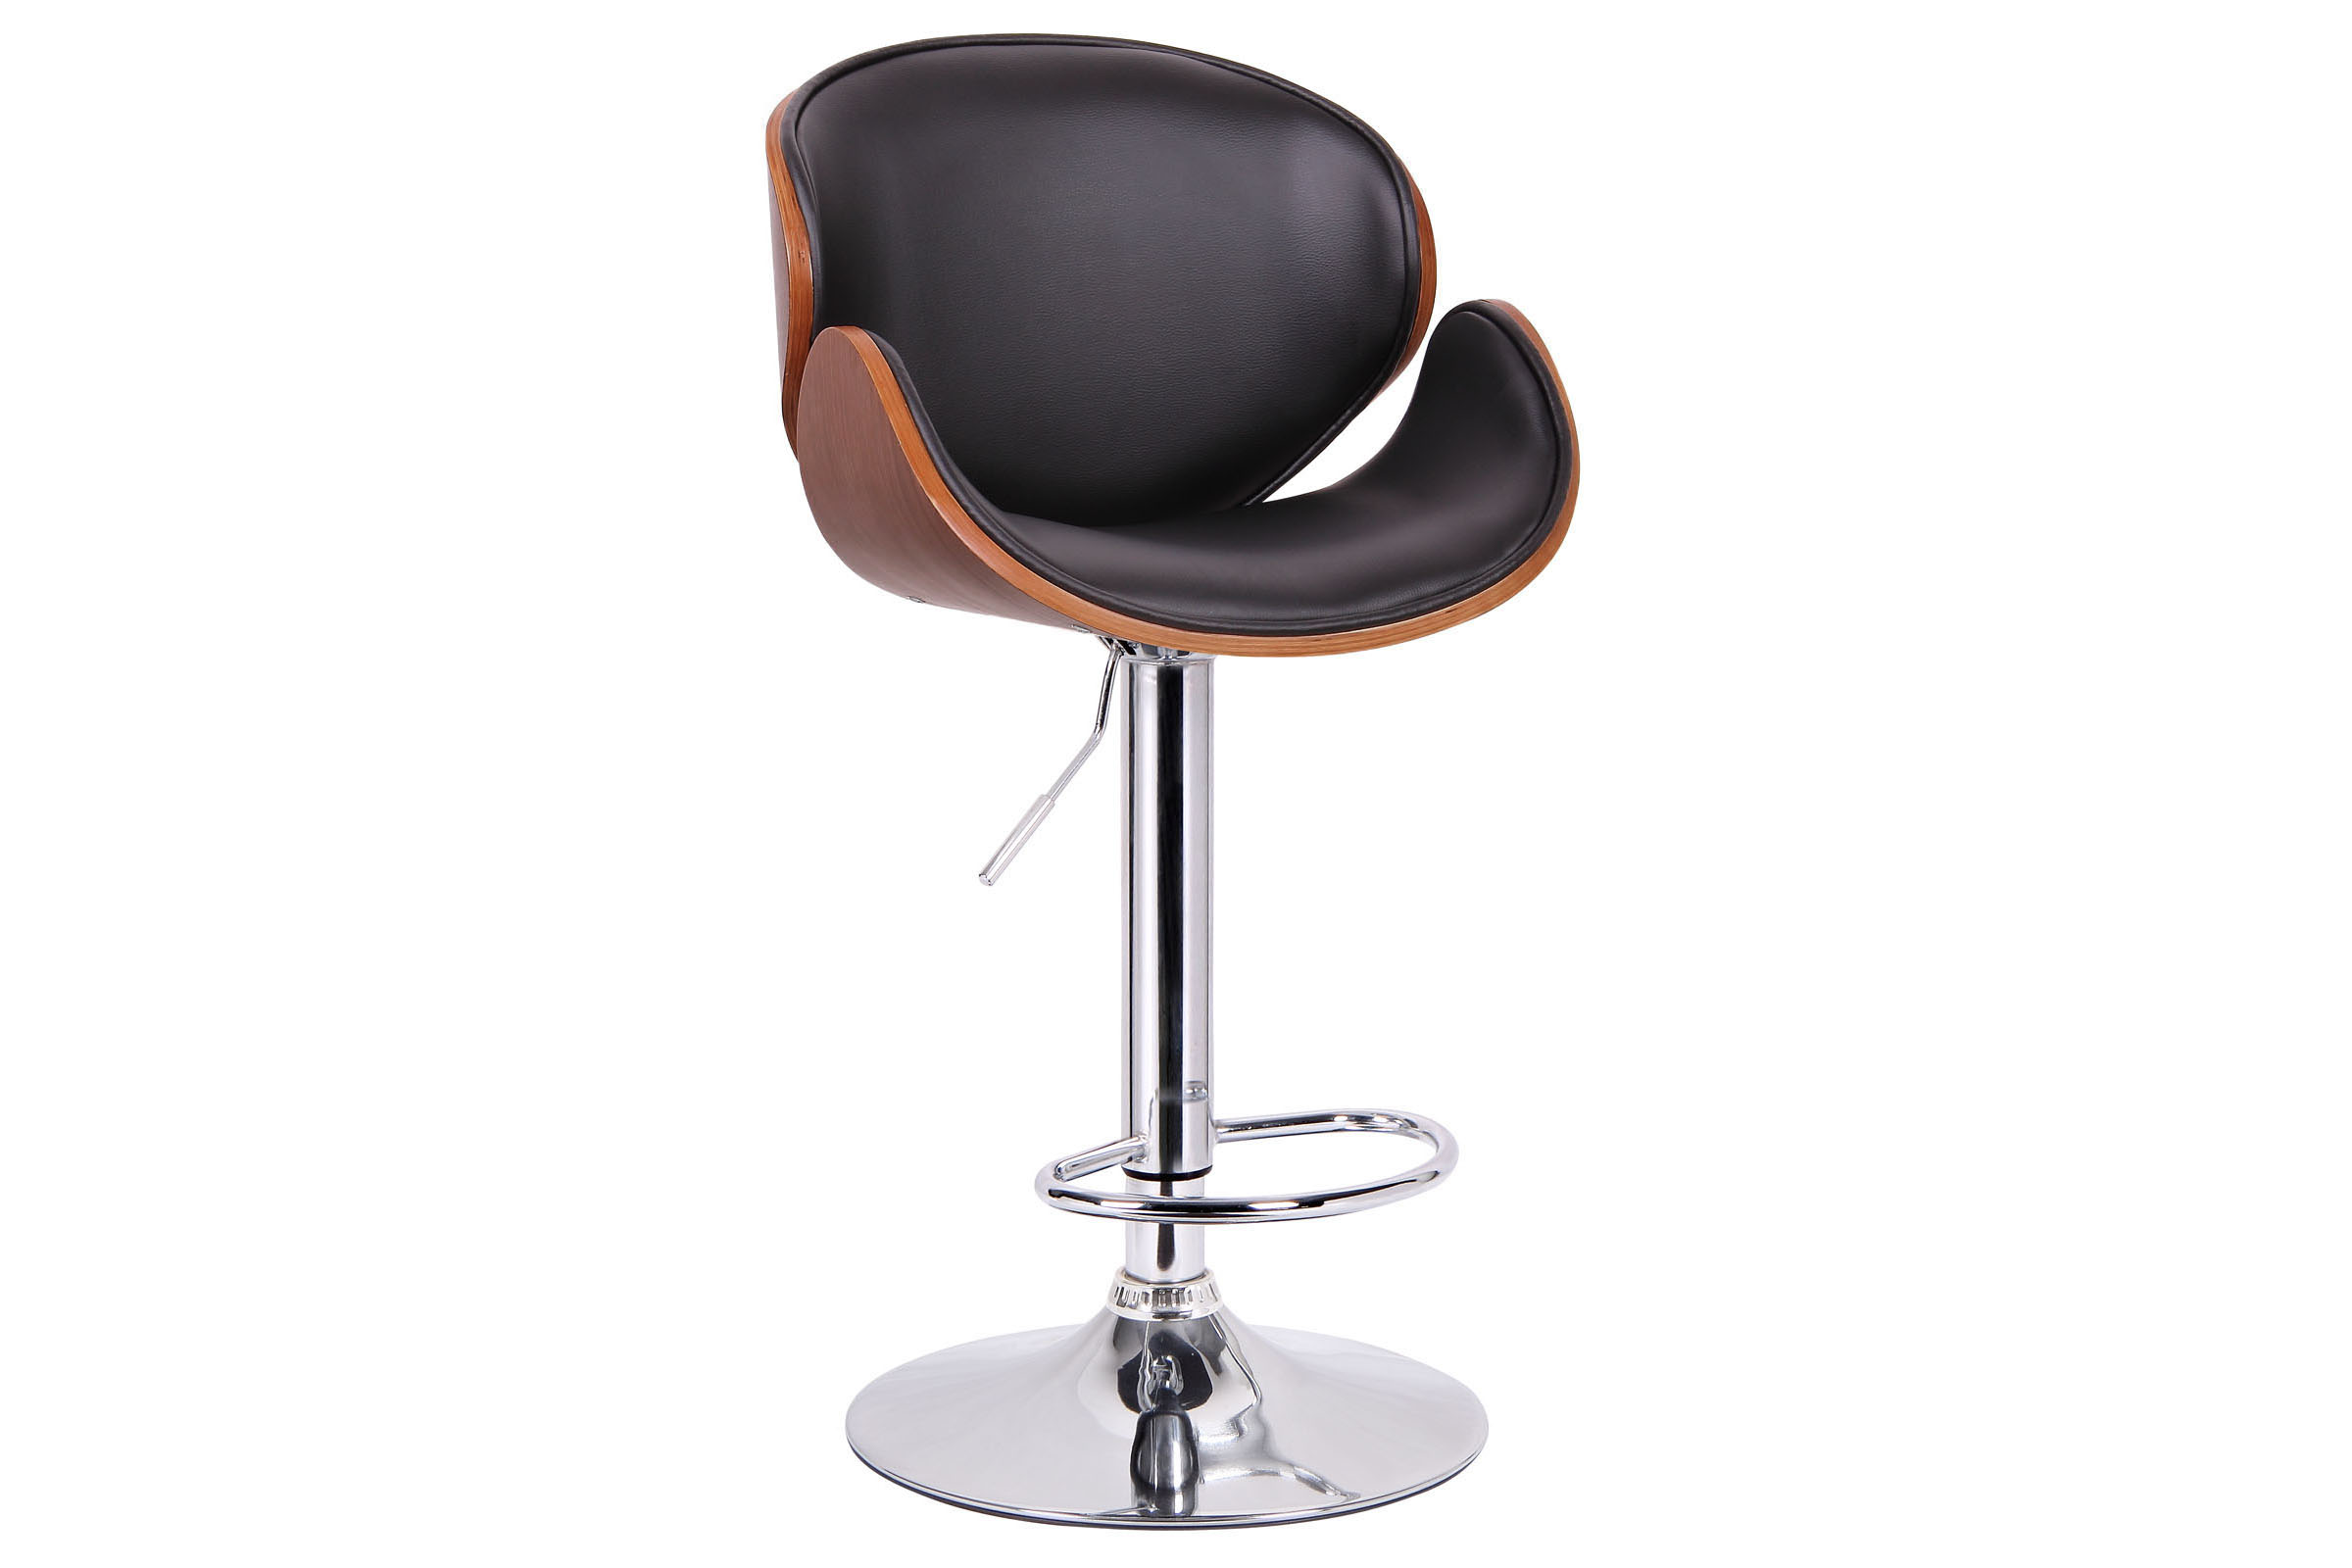 Excellent Crocus Walnut And Black Modern Bar Stool Affordable Modern Unemploymentrelief Wooden Chair Designs For Living Room Unemploymentrelieforg